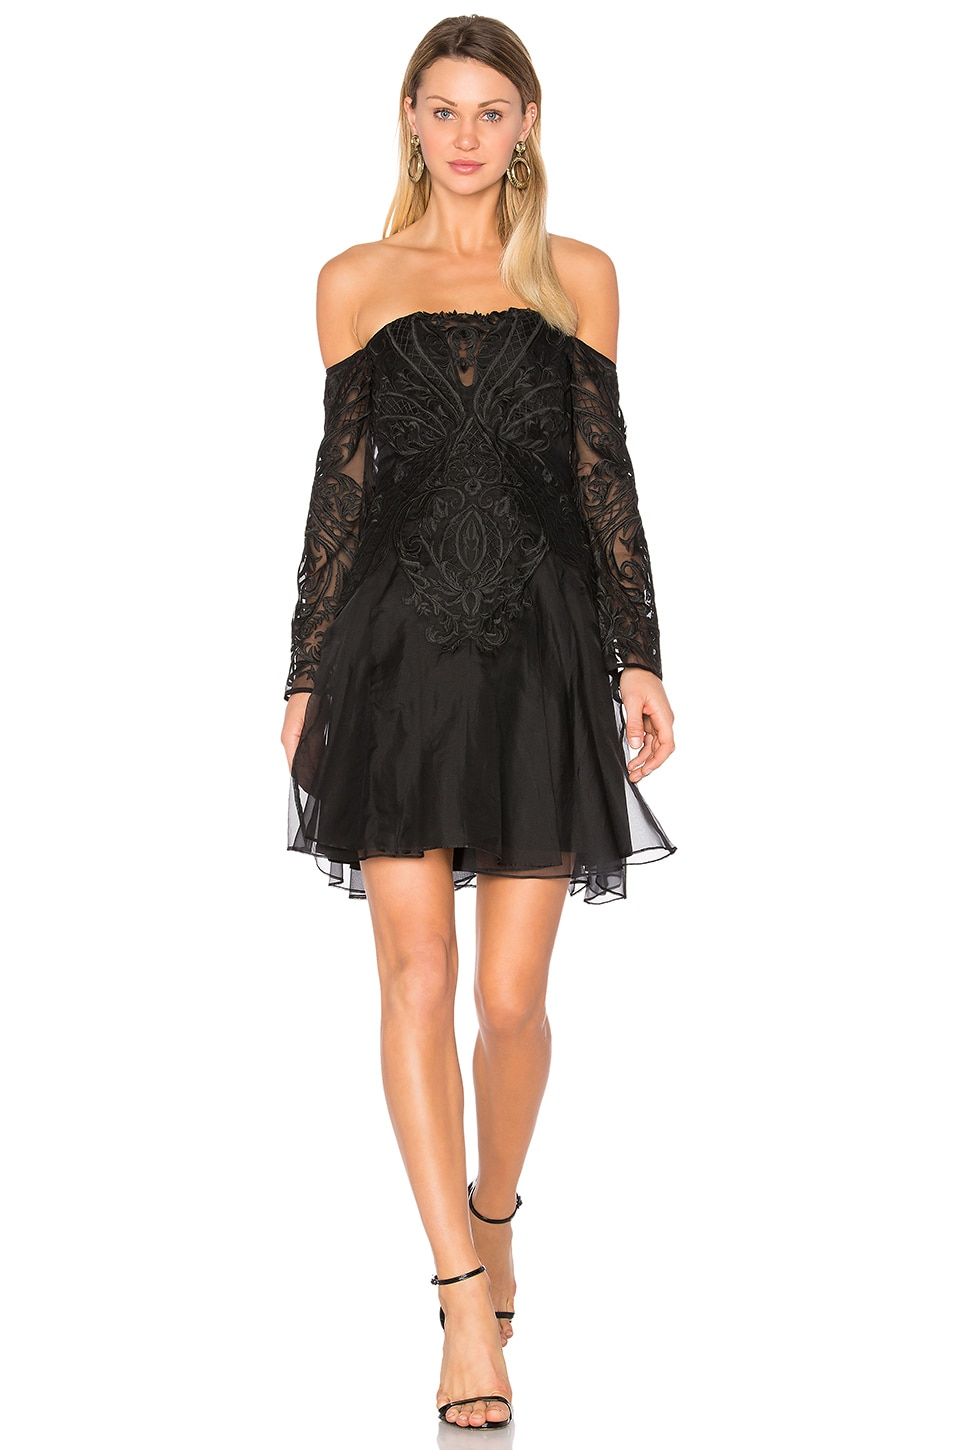 THURLEY Spanish Steps Dress in Black